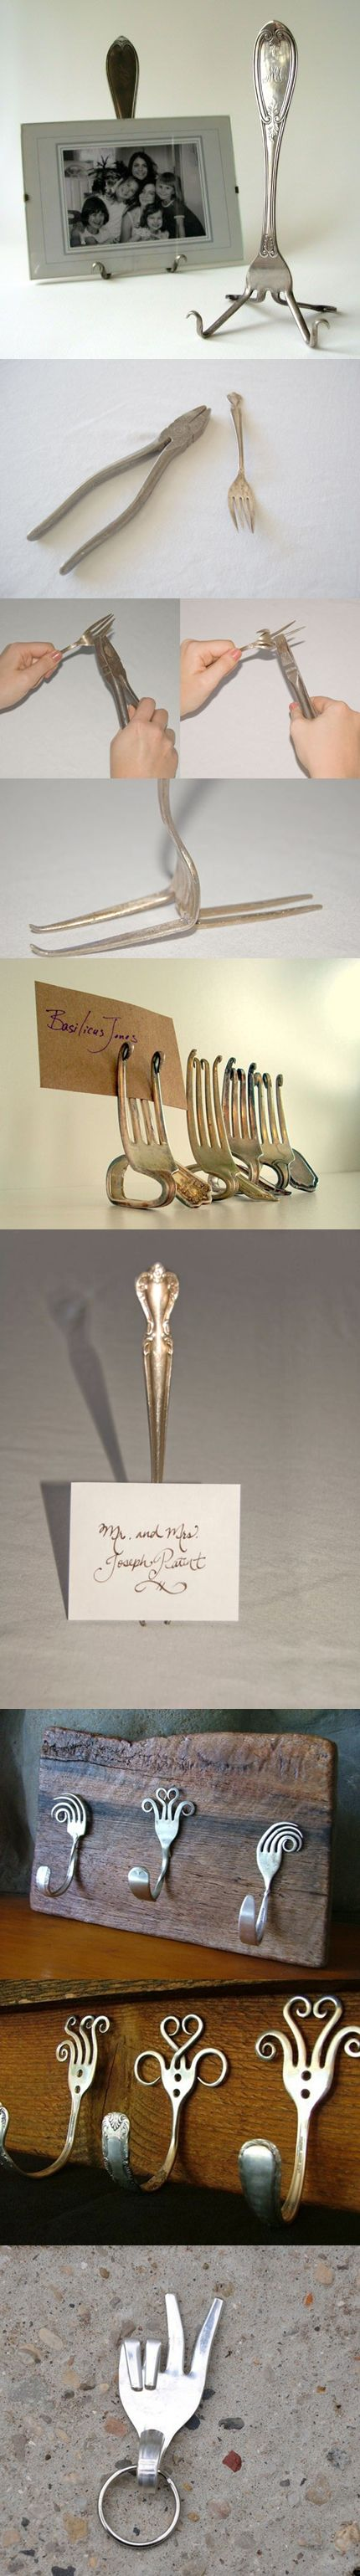 Repurposed silverware. Oh Sally, you need to see this!